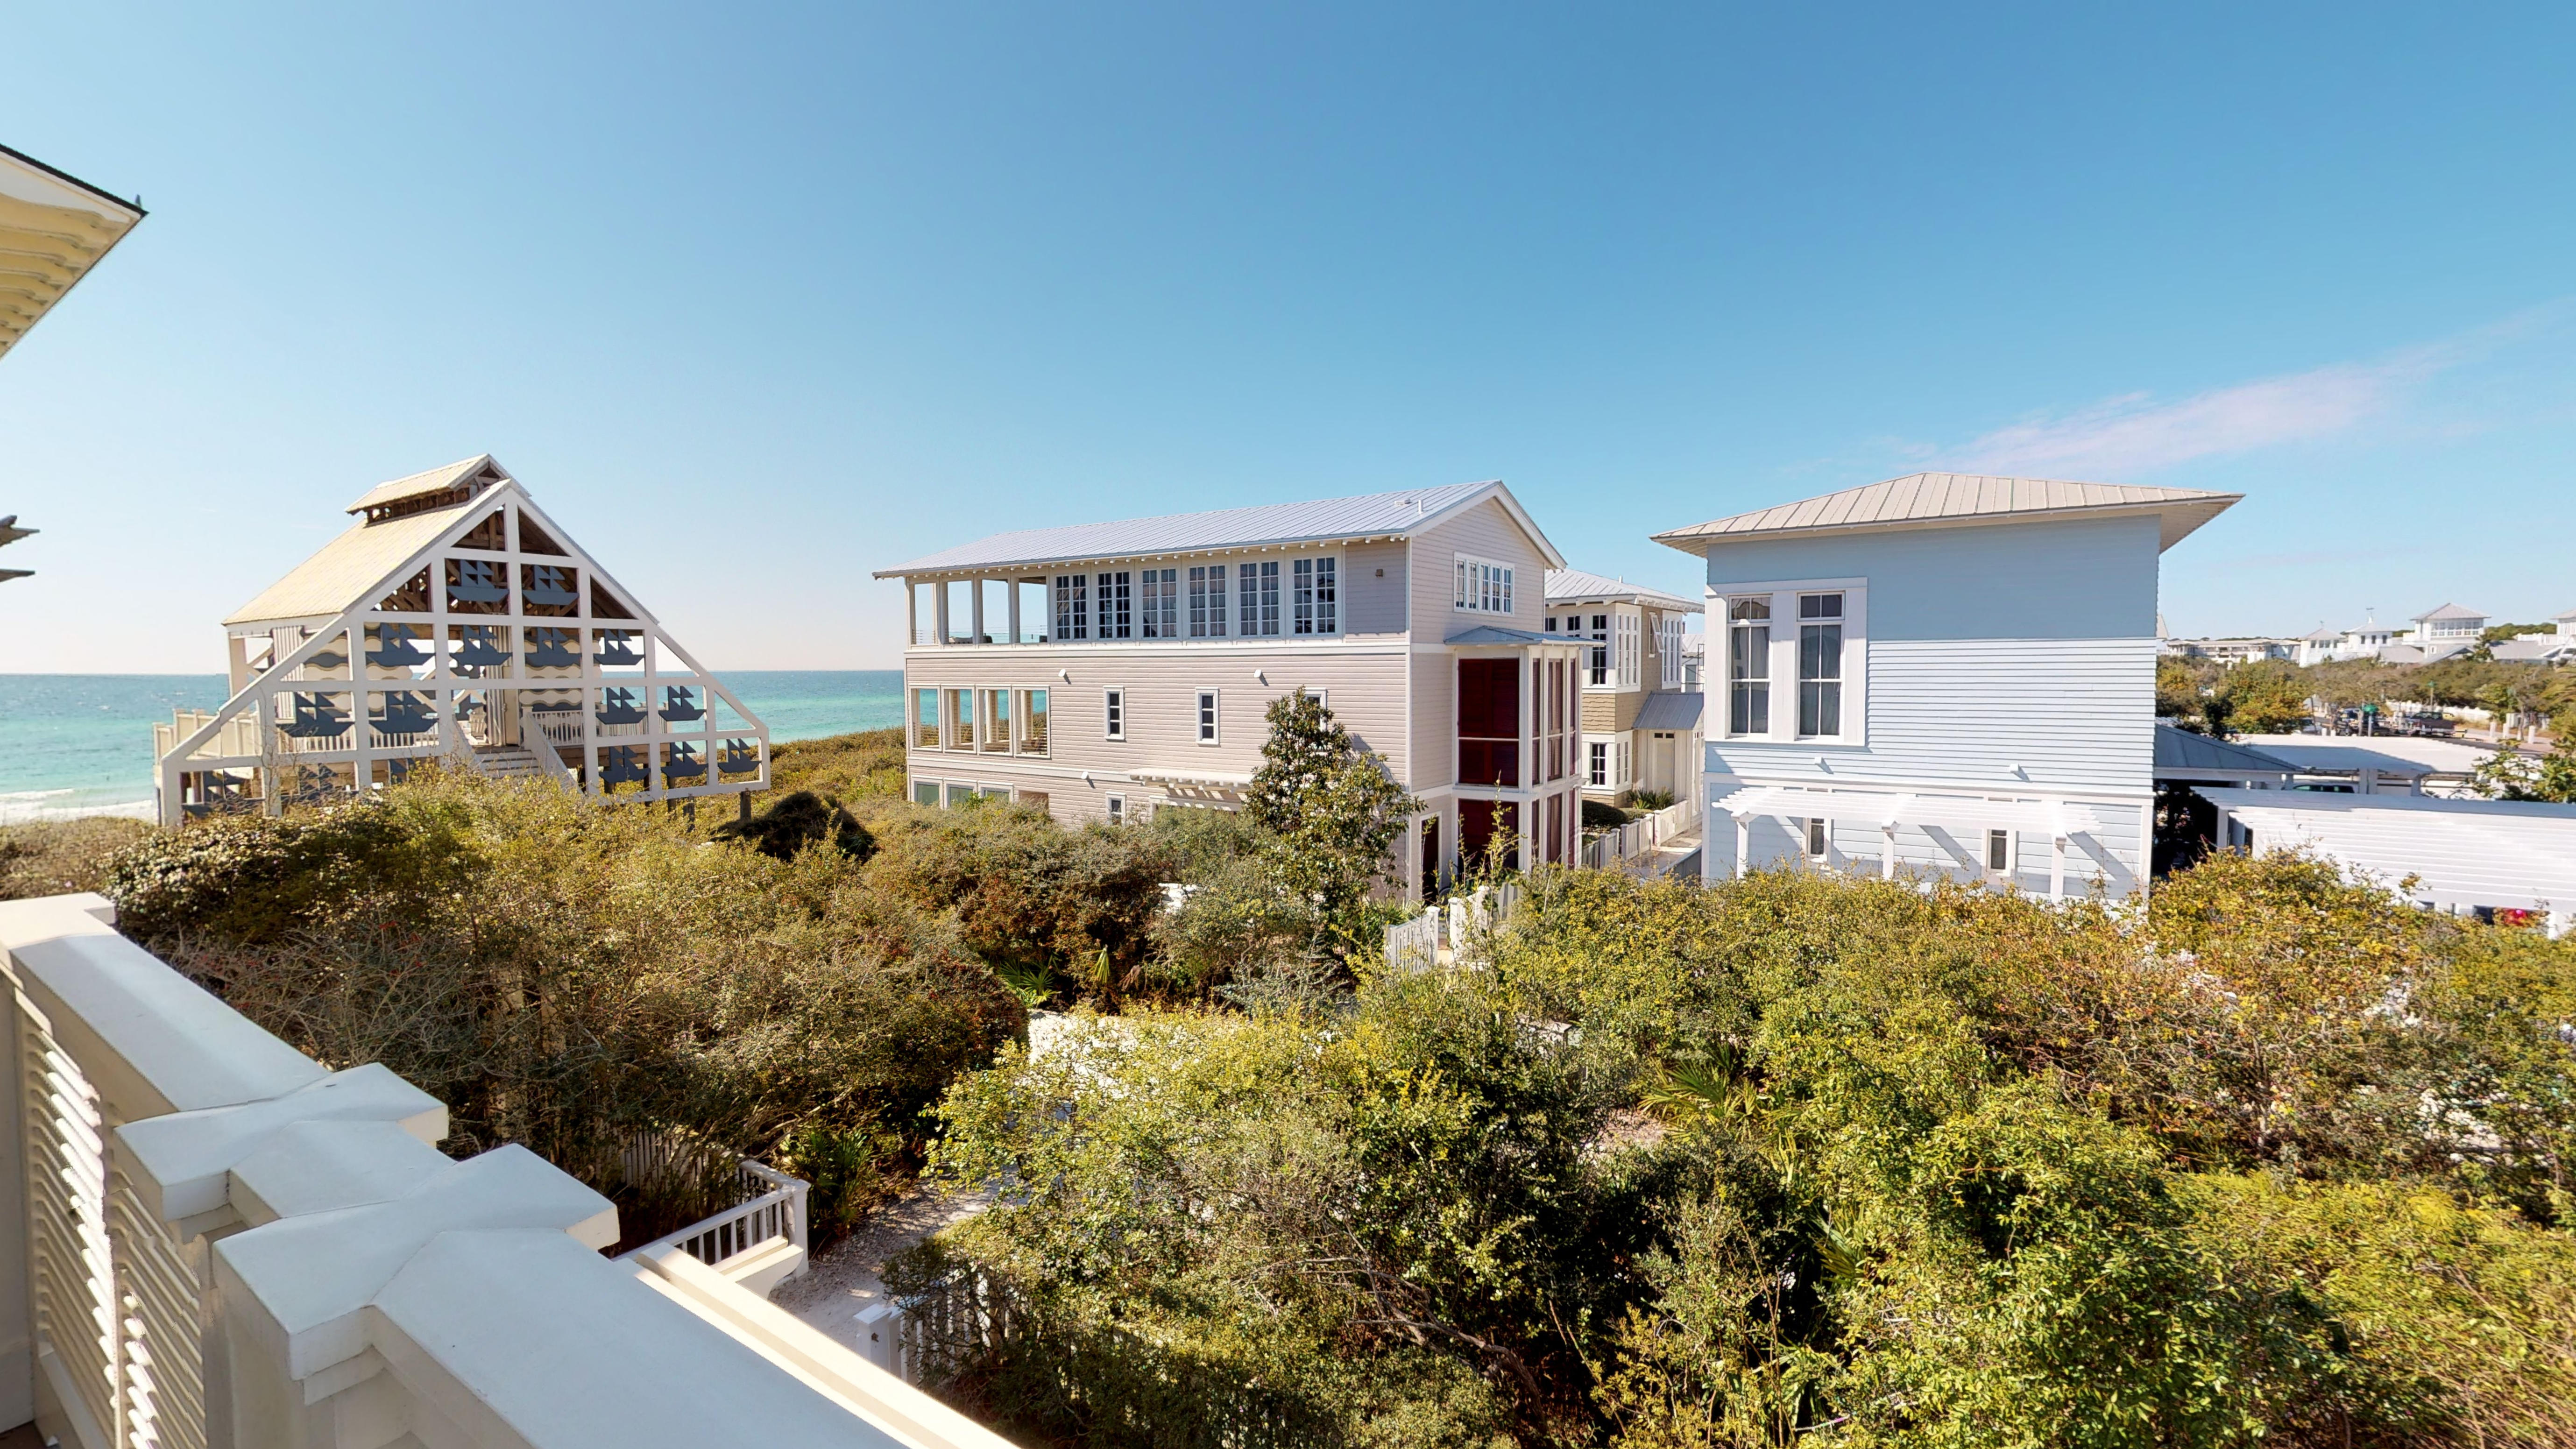 Views of West Ruskin Pavillion and Gulf from the Master balcony